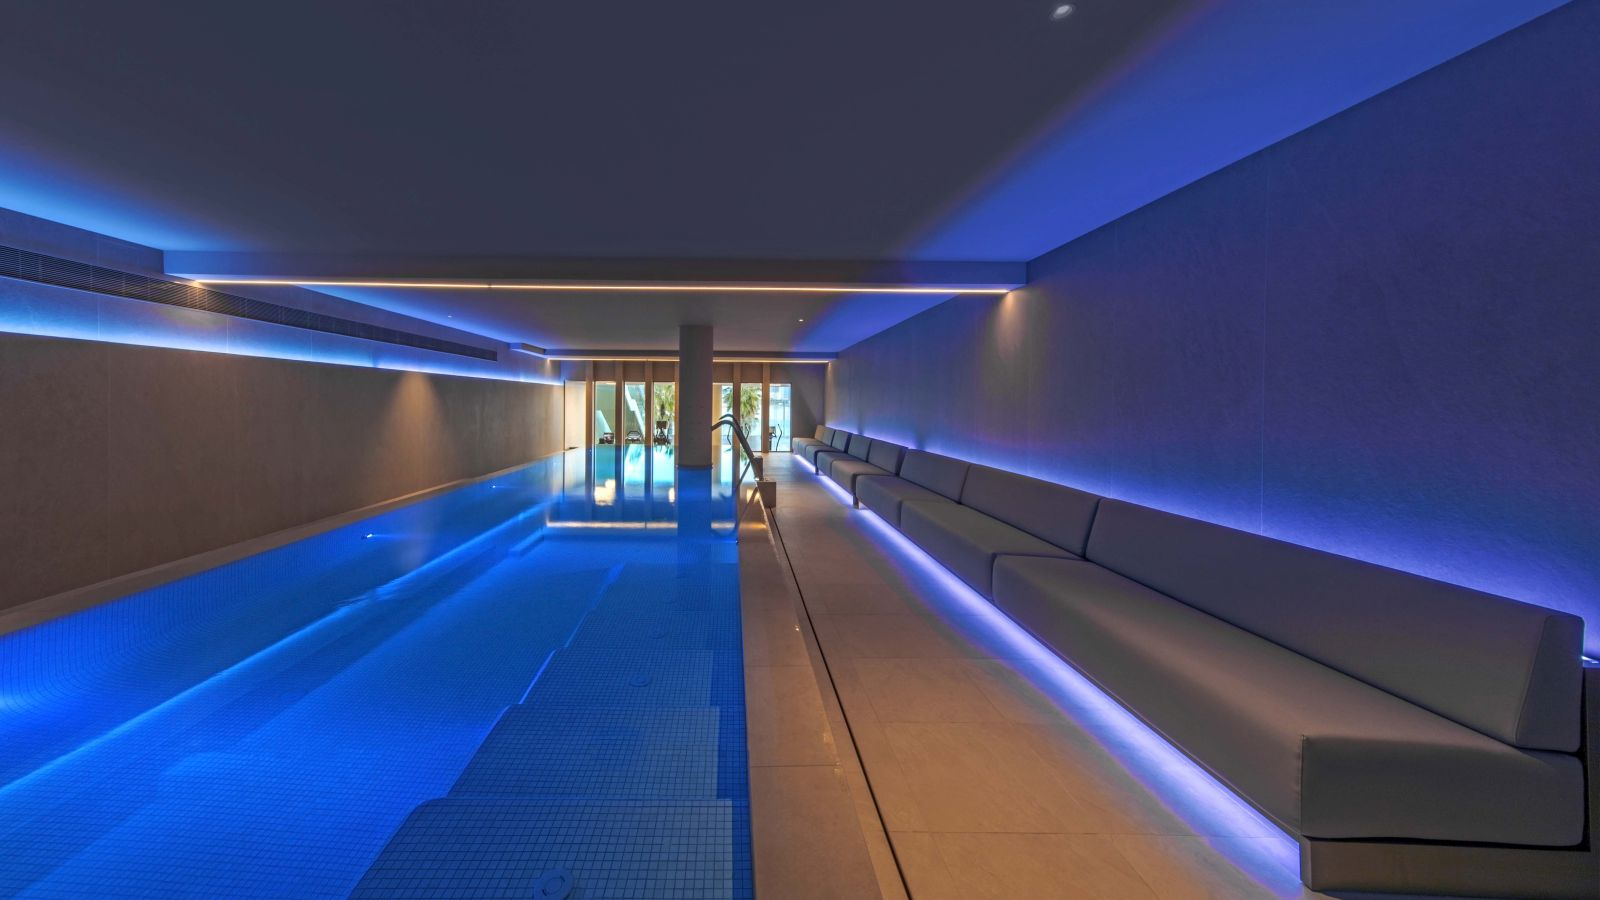 New Getaway indoor swimming - and relaxation area at Bliss Spa Barcelona